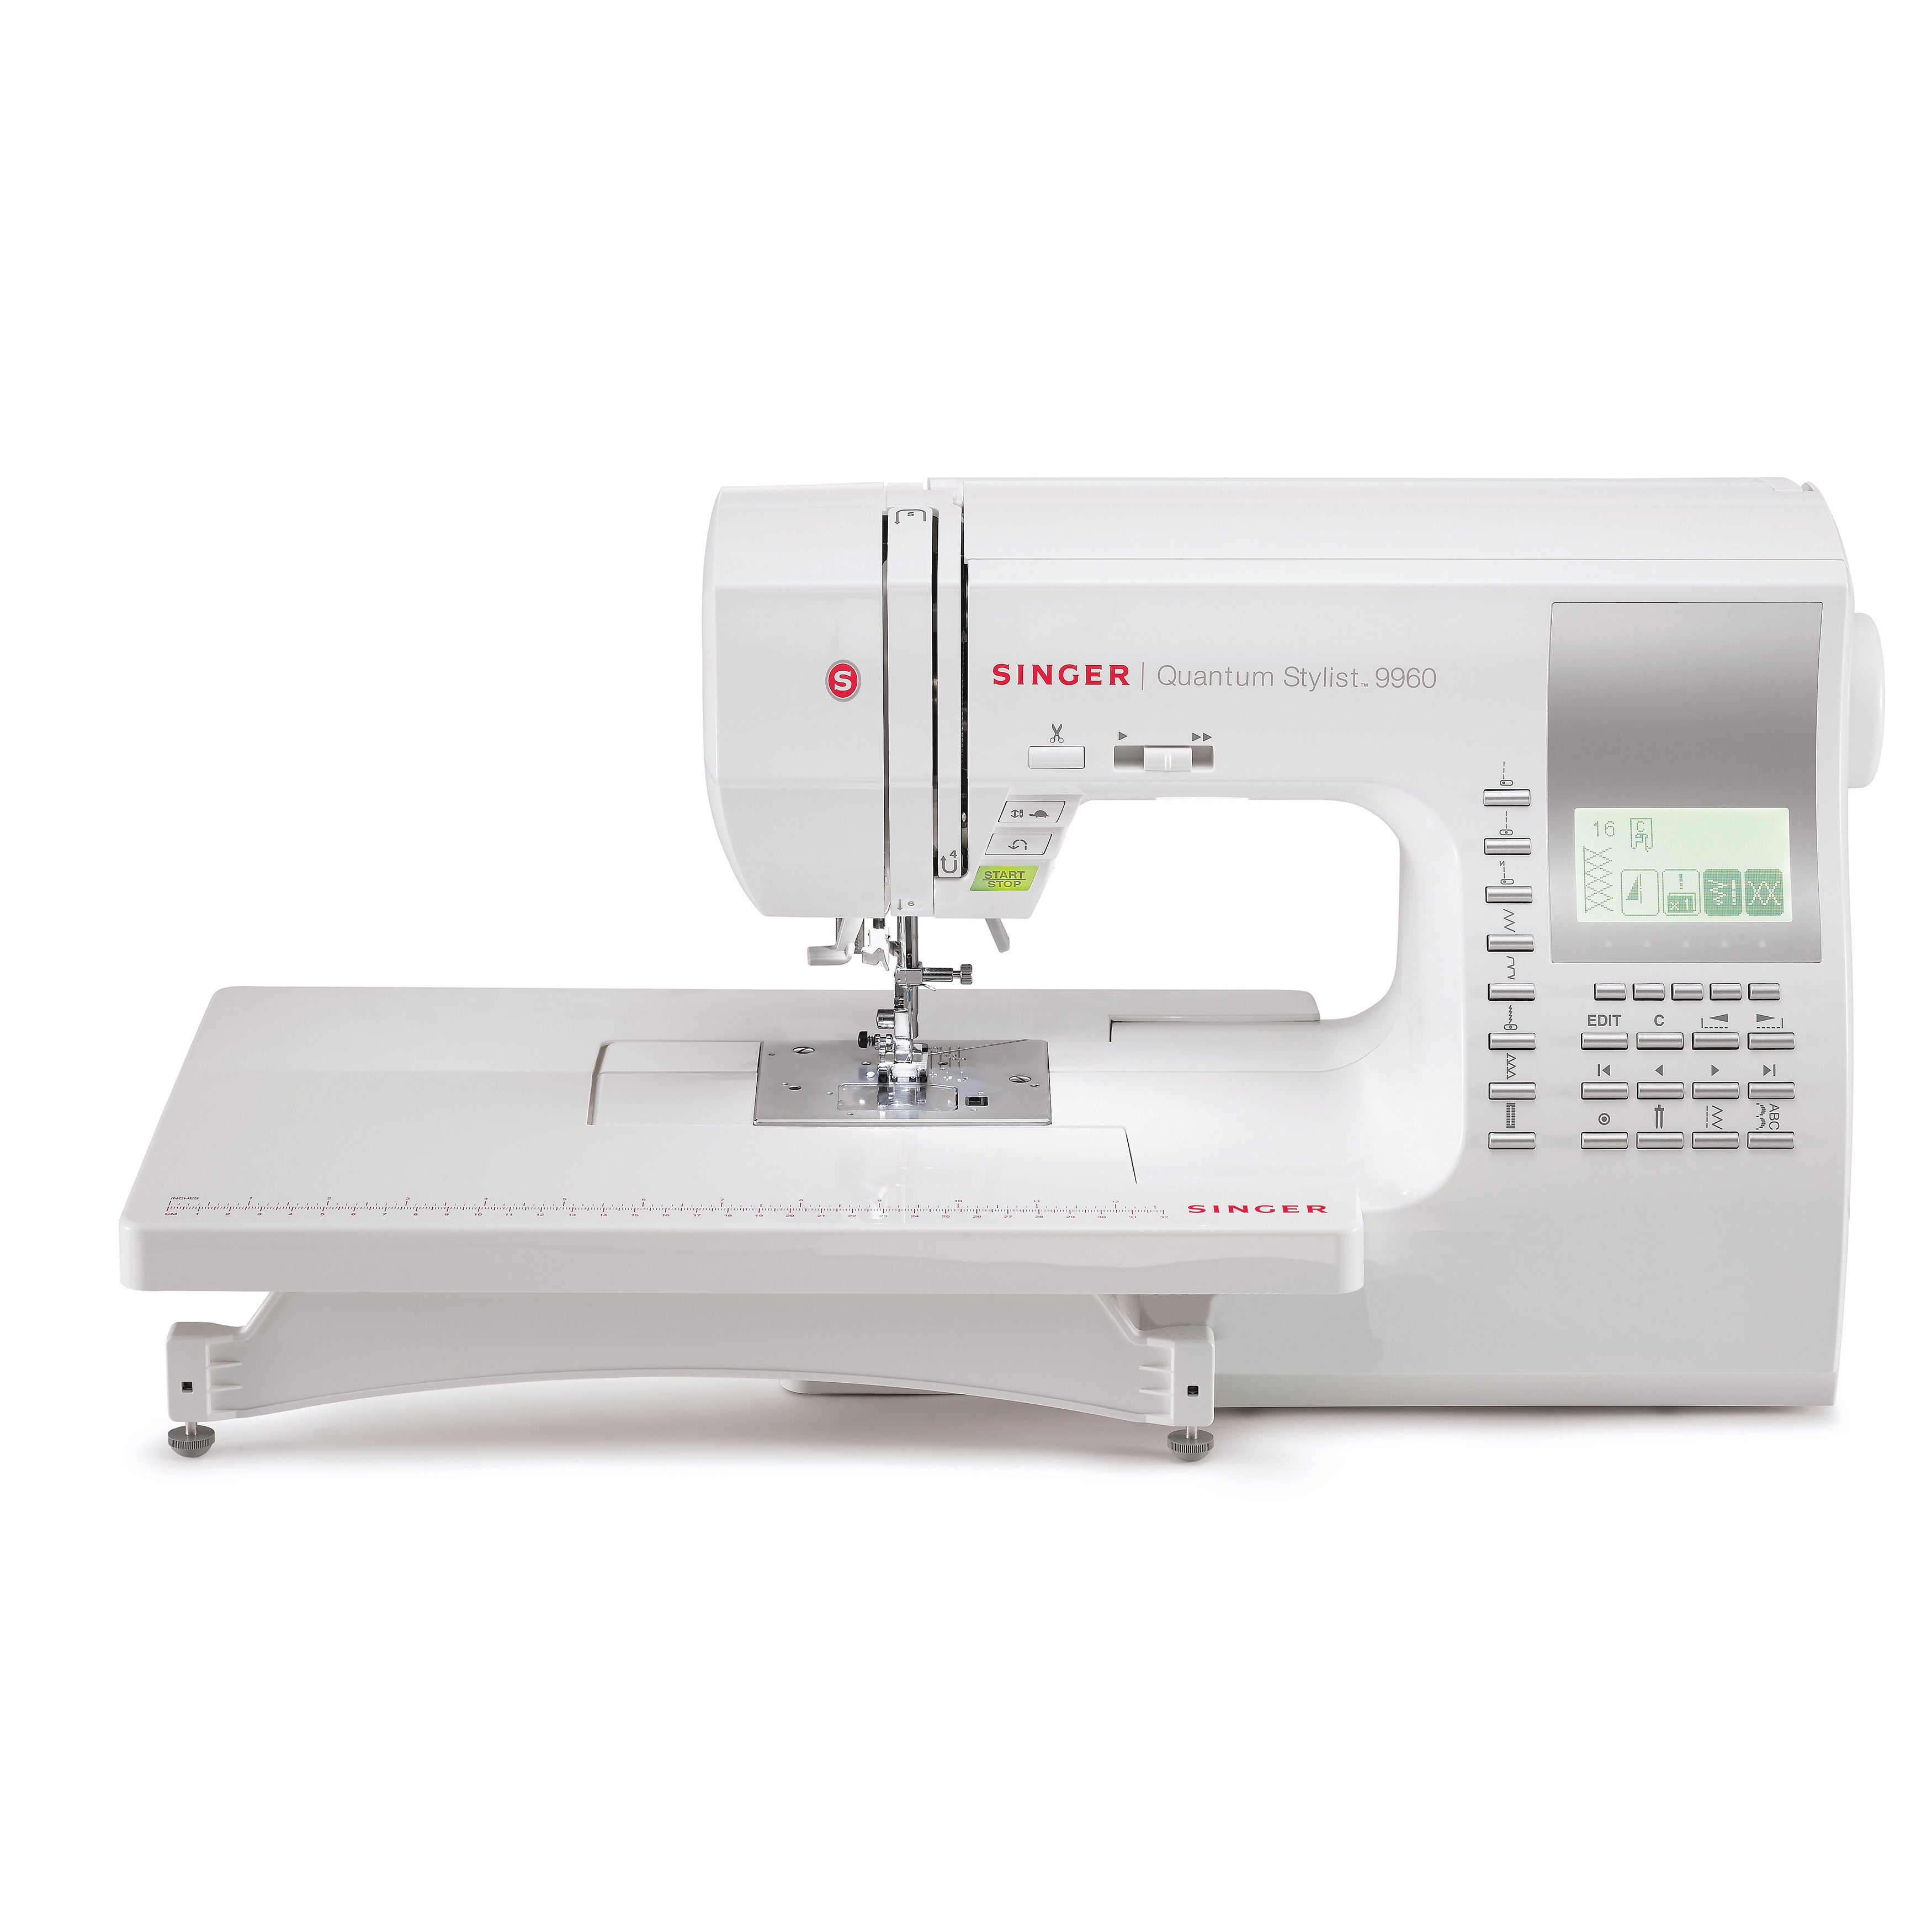 SINGER SEWING CO. 9960 Quantum Stylist Sewing Machine, Wh...